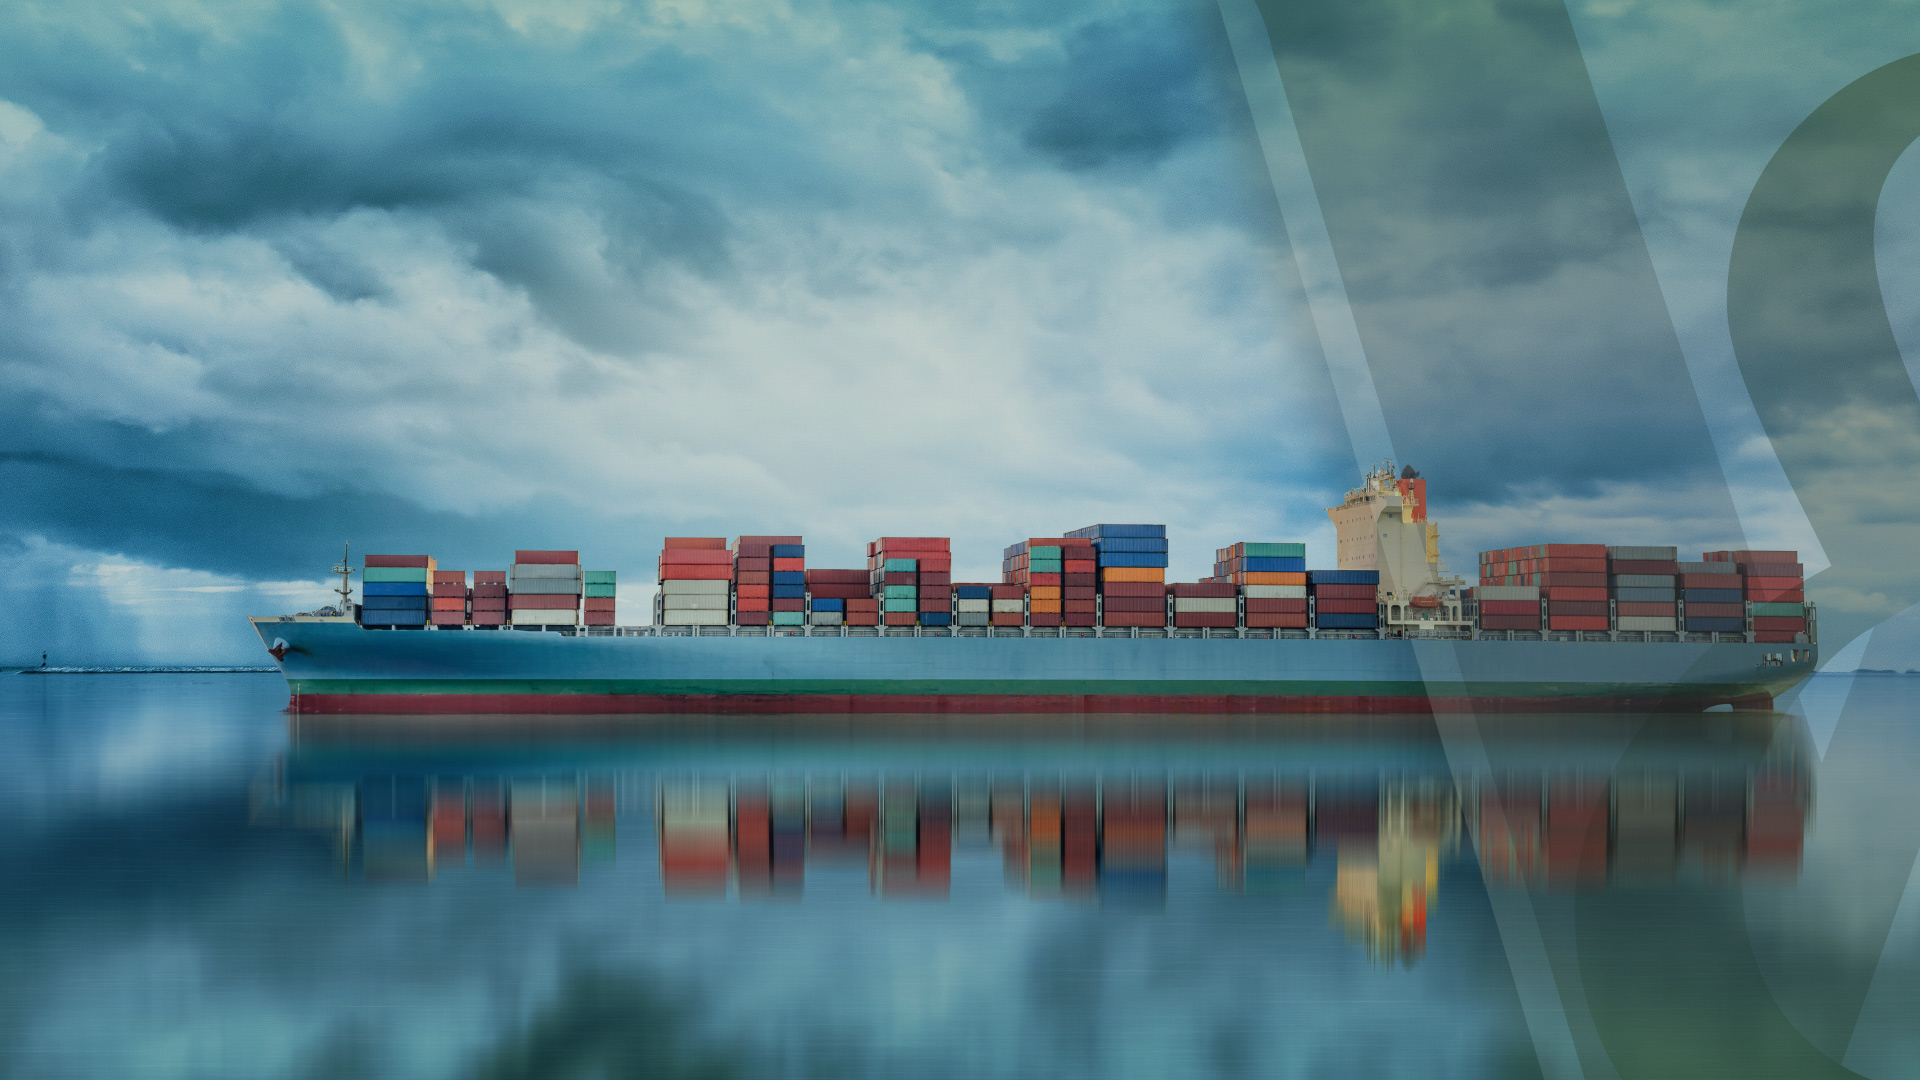 Maritime Industry Image